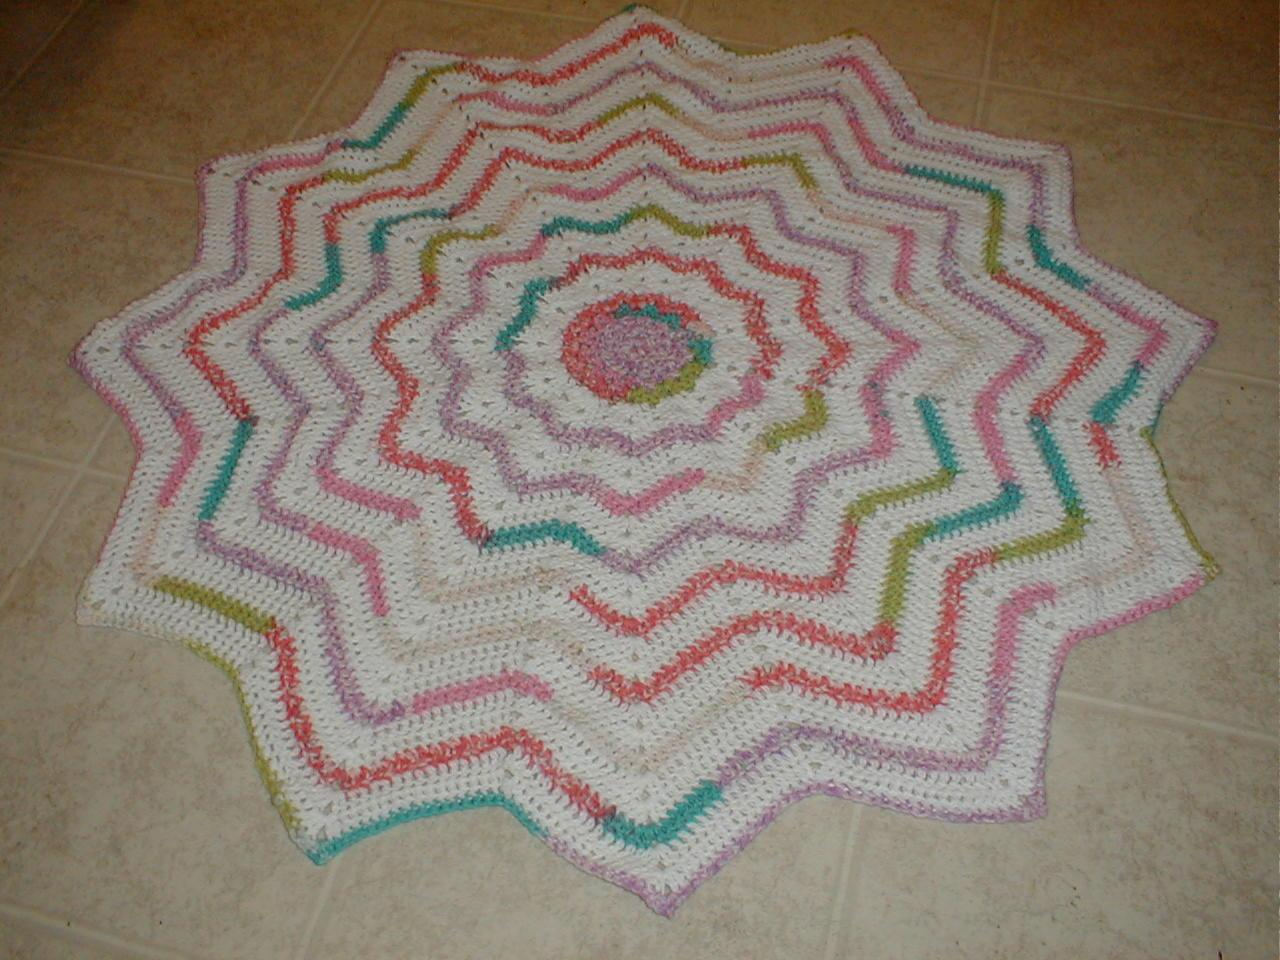 Karens Crocheted Garden of Colors: 12-Point Round Ripple ...